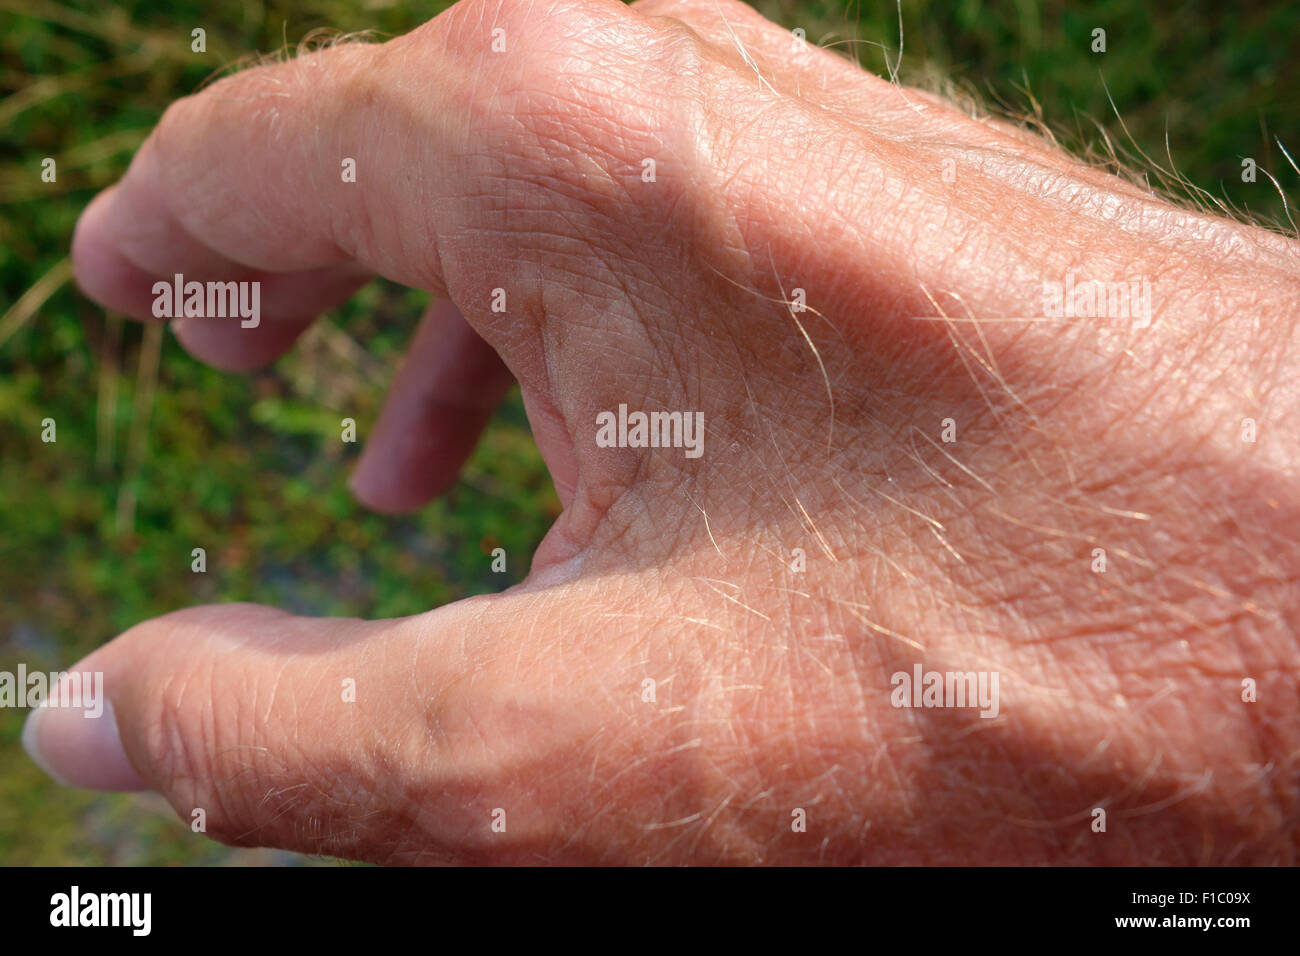 Muscle wasting and atrophy between the thumb and forefinger of the hand due to Ulnar neuropathy this being a major - Stock Image